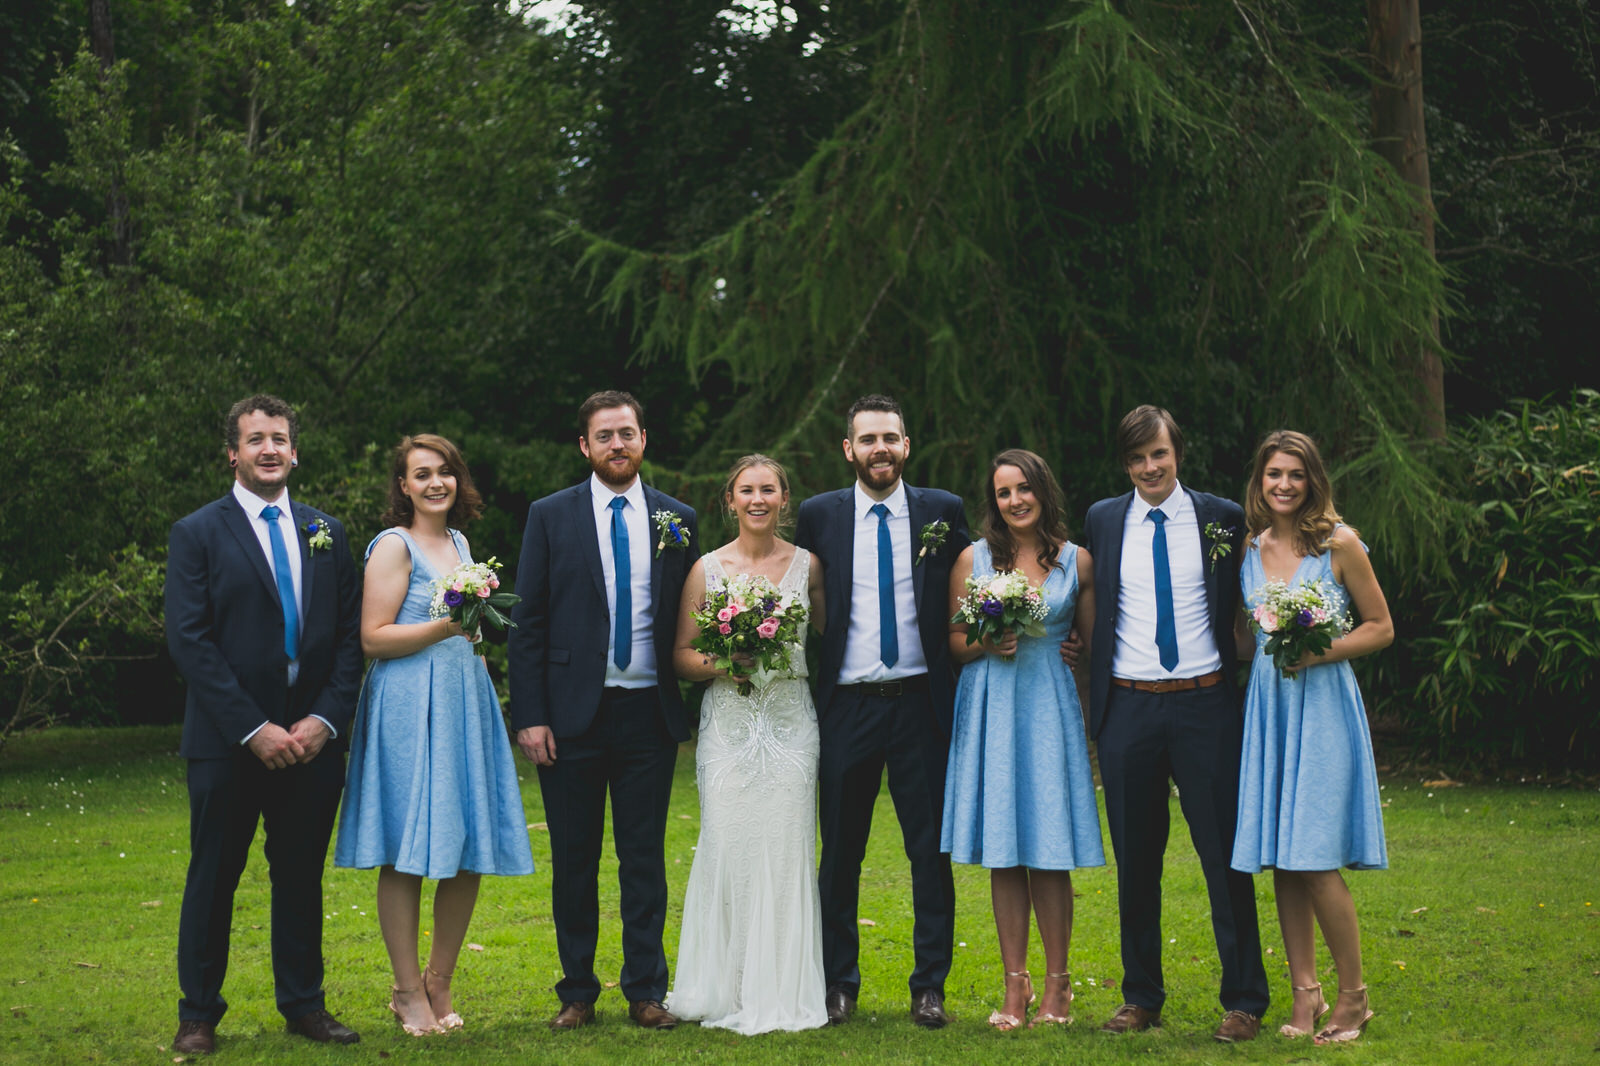 Blue and Navy bridal party portraits at a back garden wedding